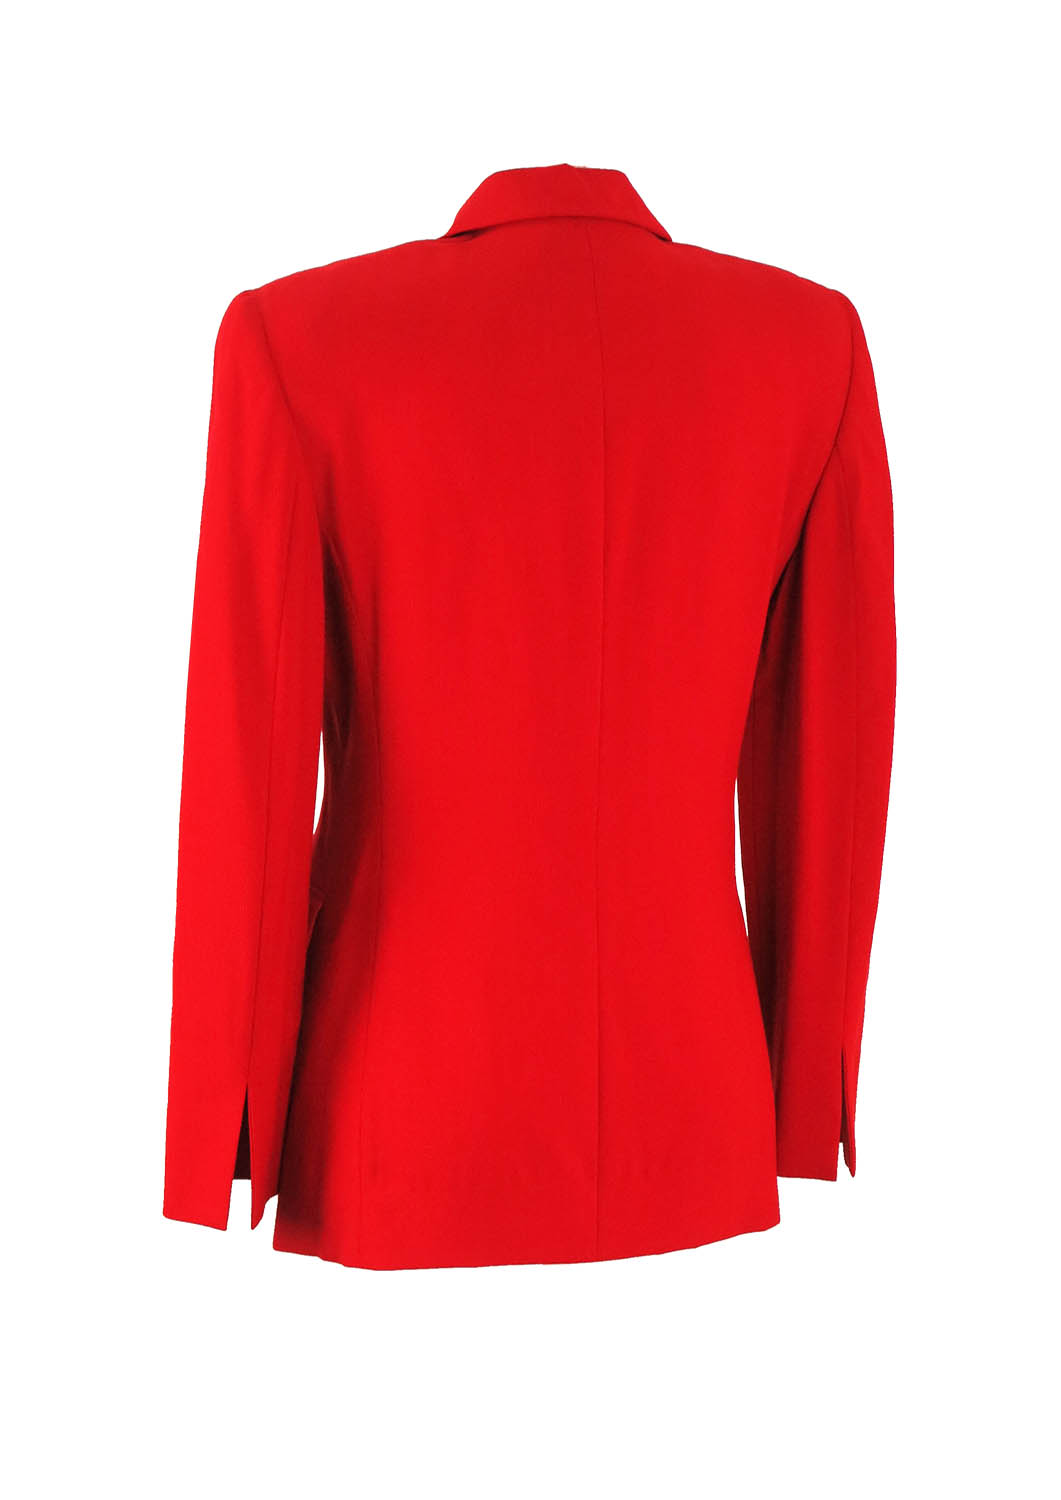 Ferre Studio 0001 Red Jacket With Gold Buttons S M